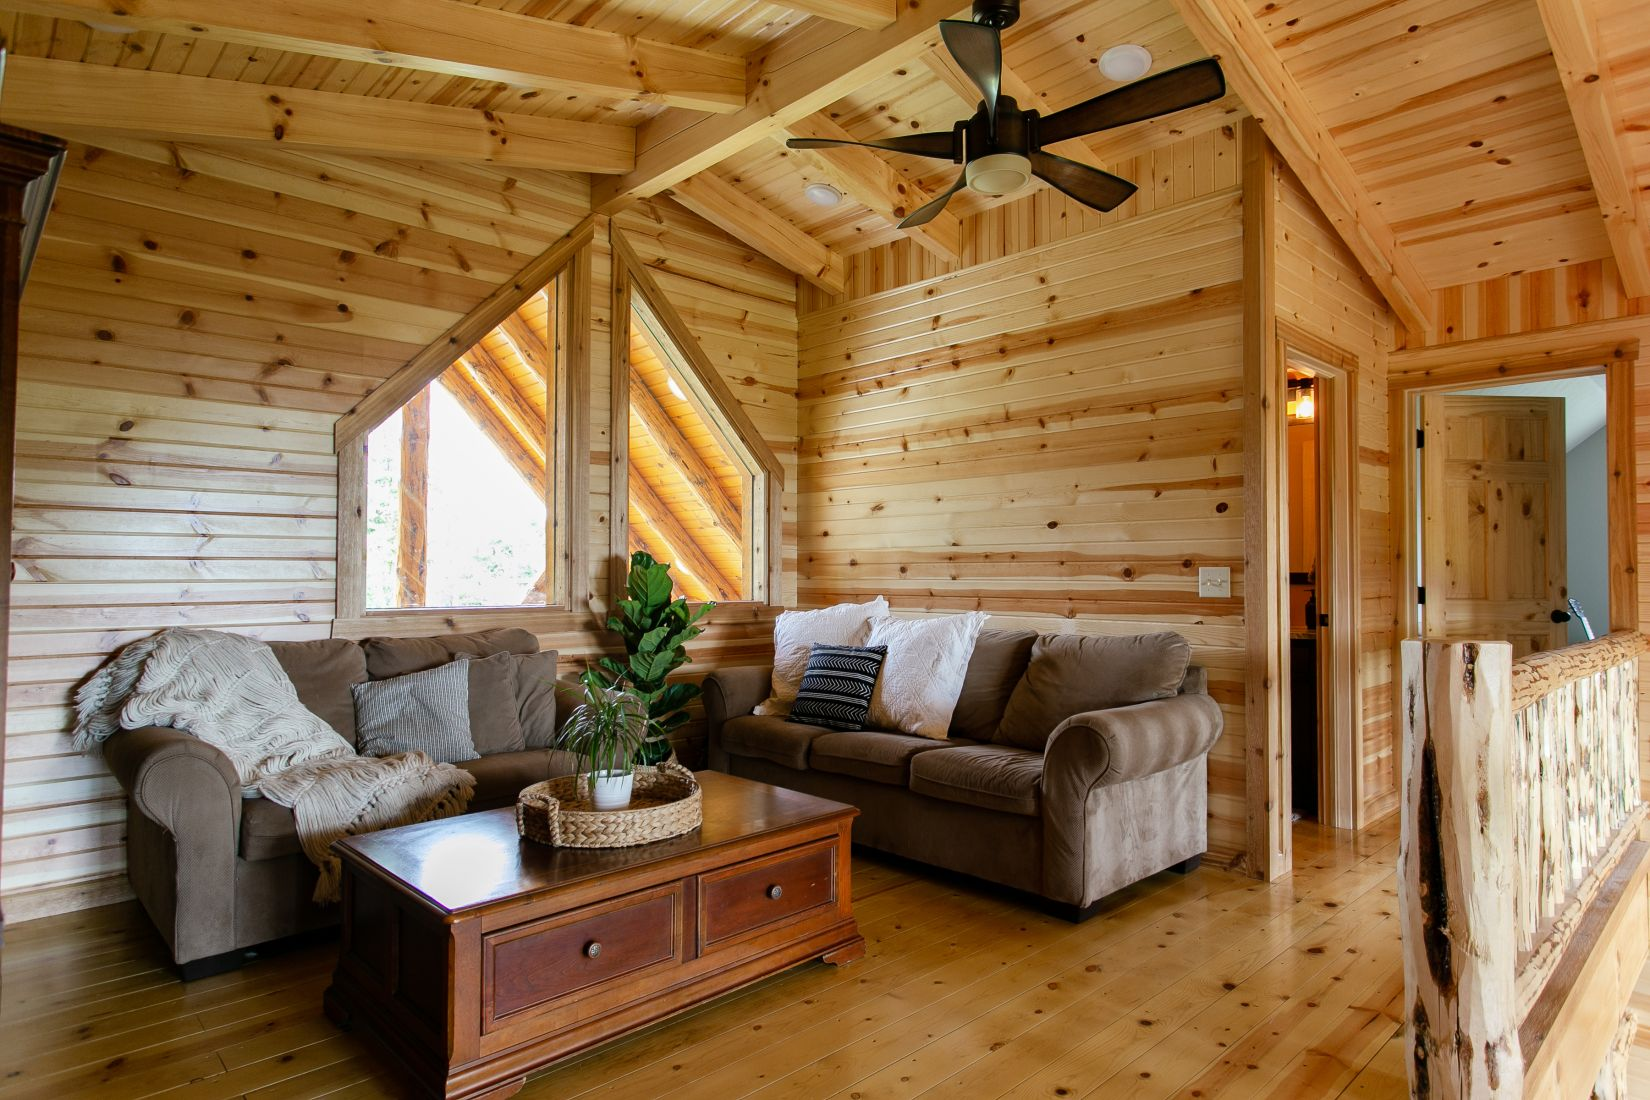 Open Loft Area with Tongue and Groove Barn Siding on Walls